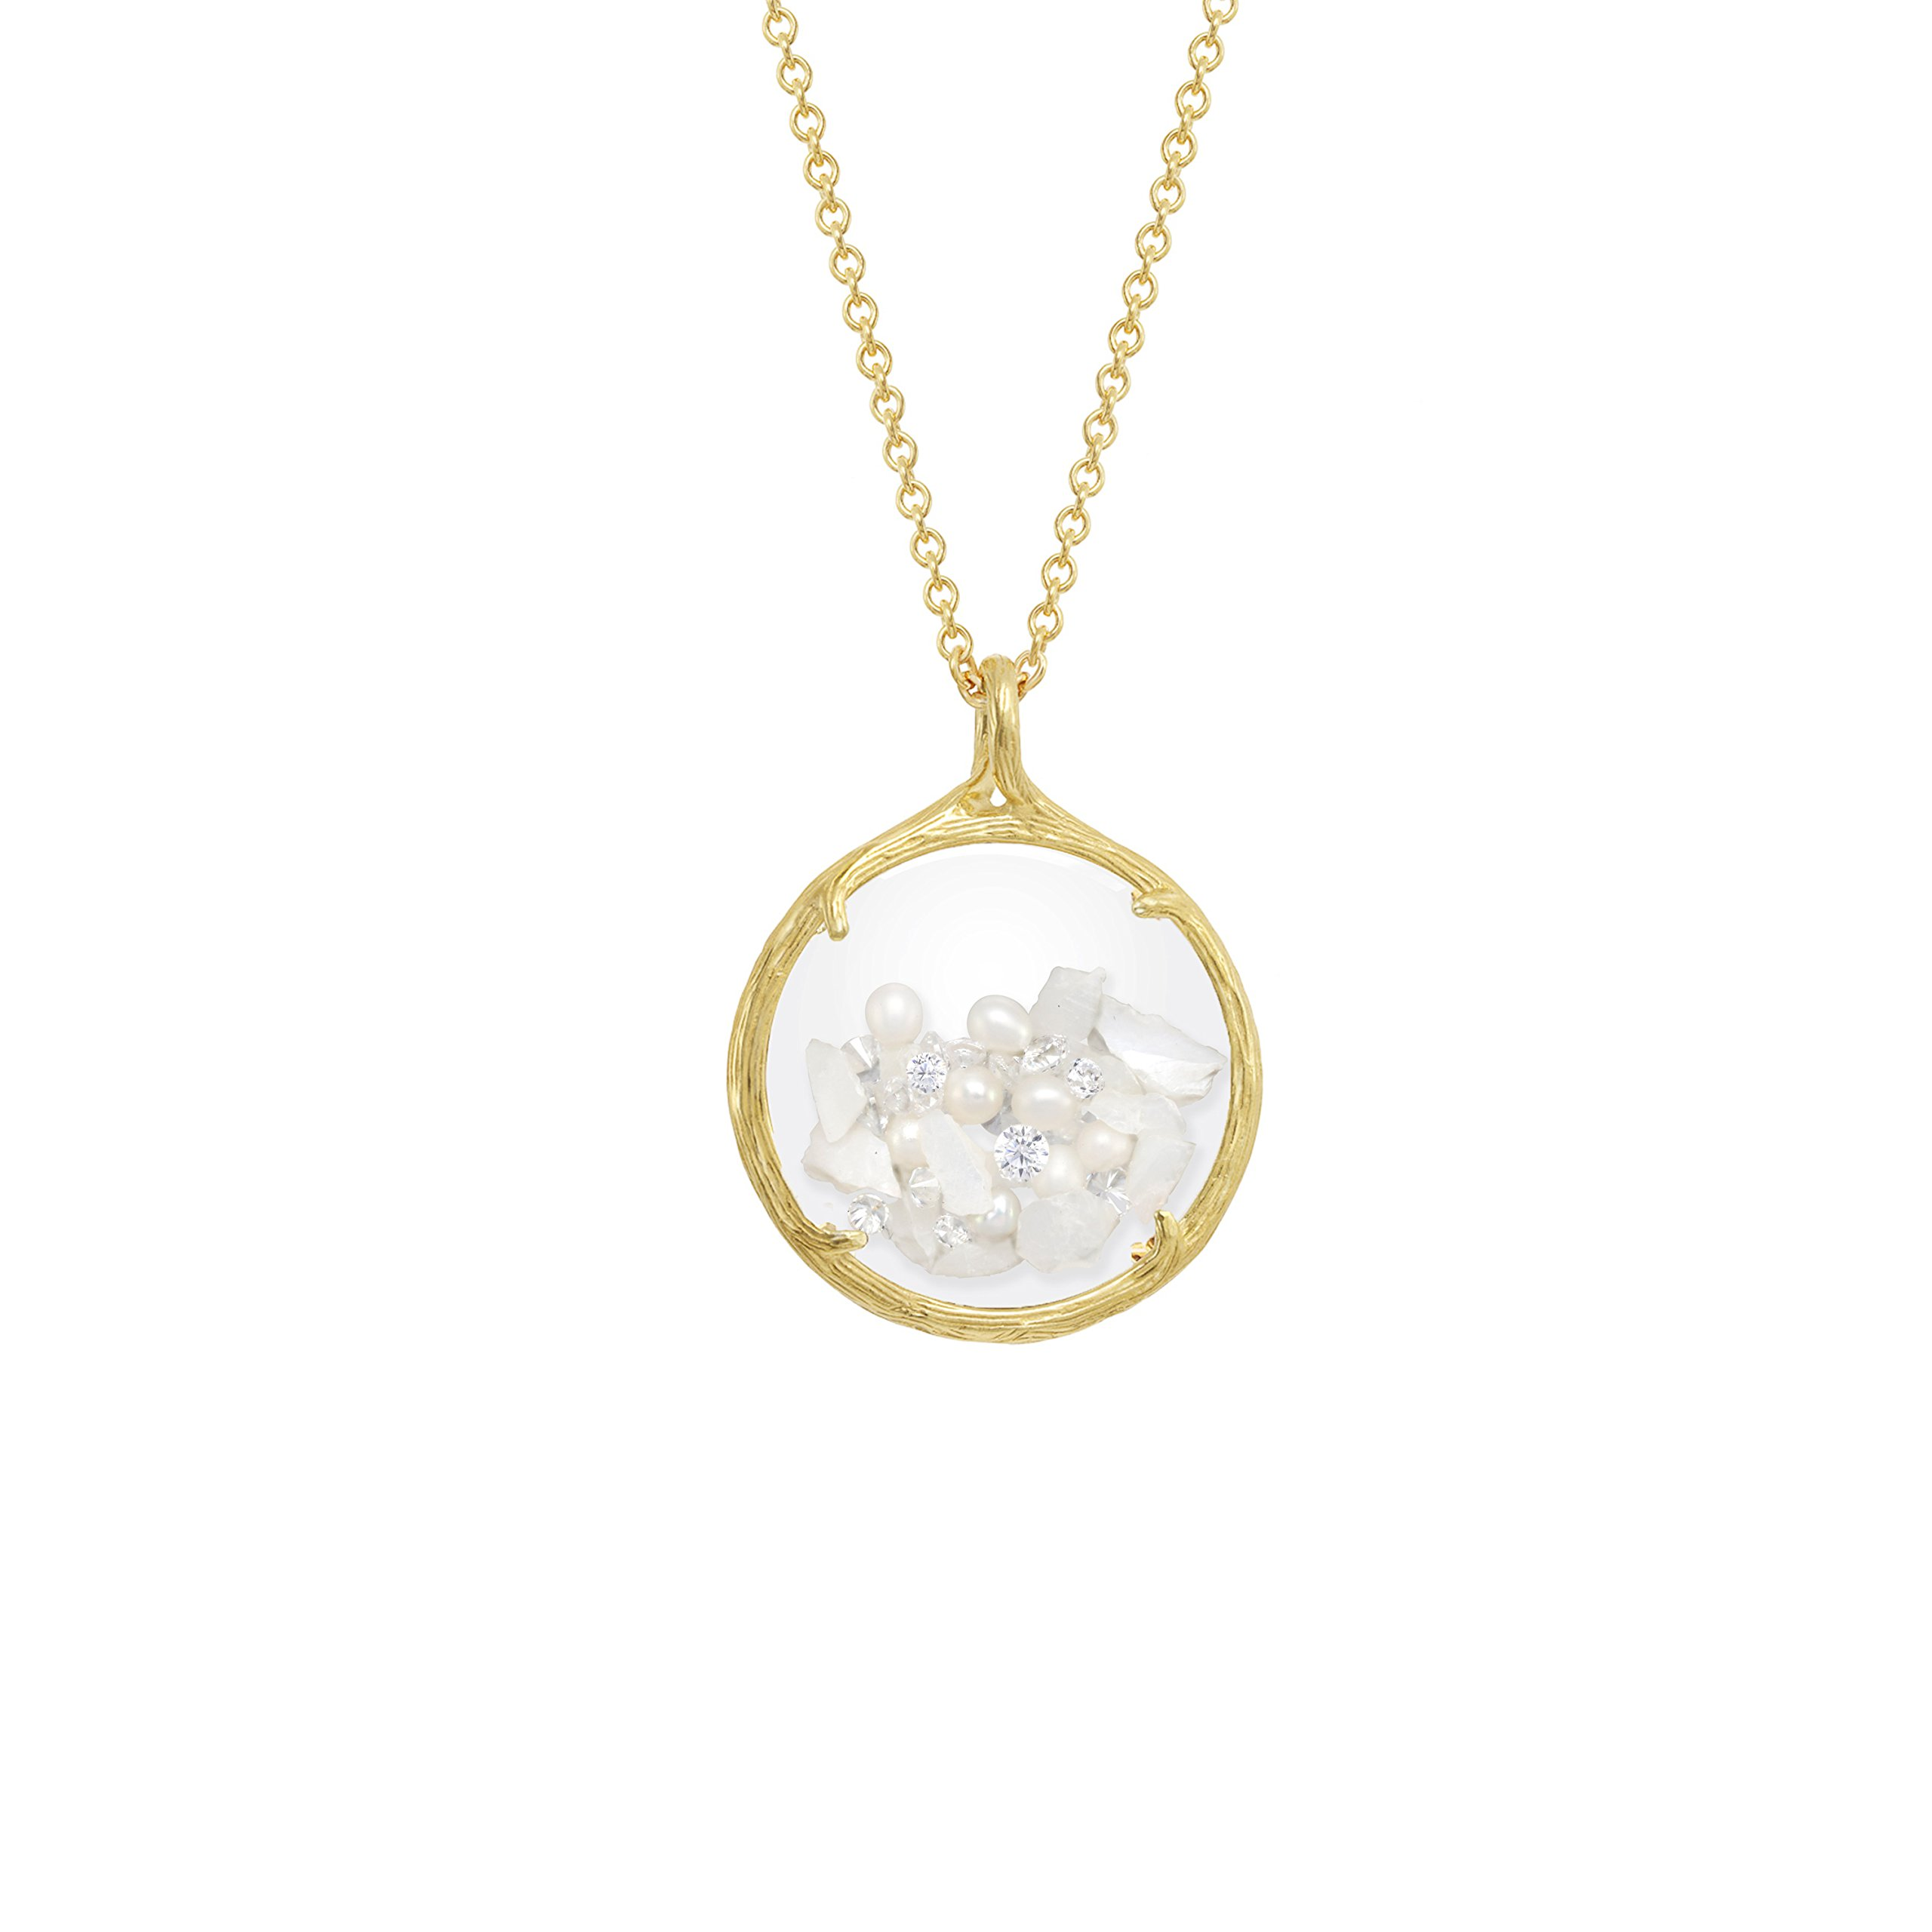 Birthstone shaker floating crystal stone Necklace (June Mother of Pearl) by Catherine Weitzman